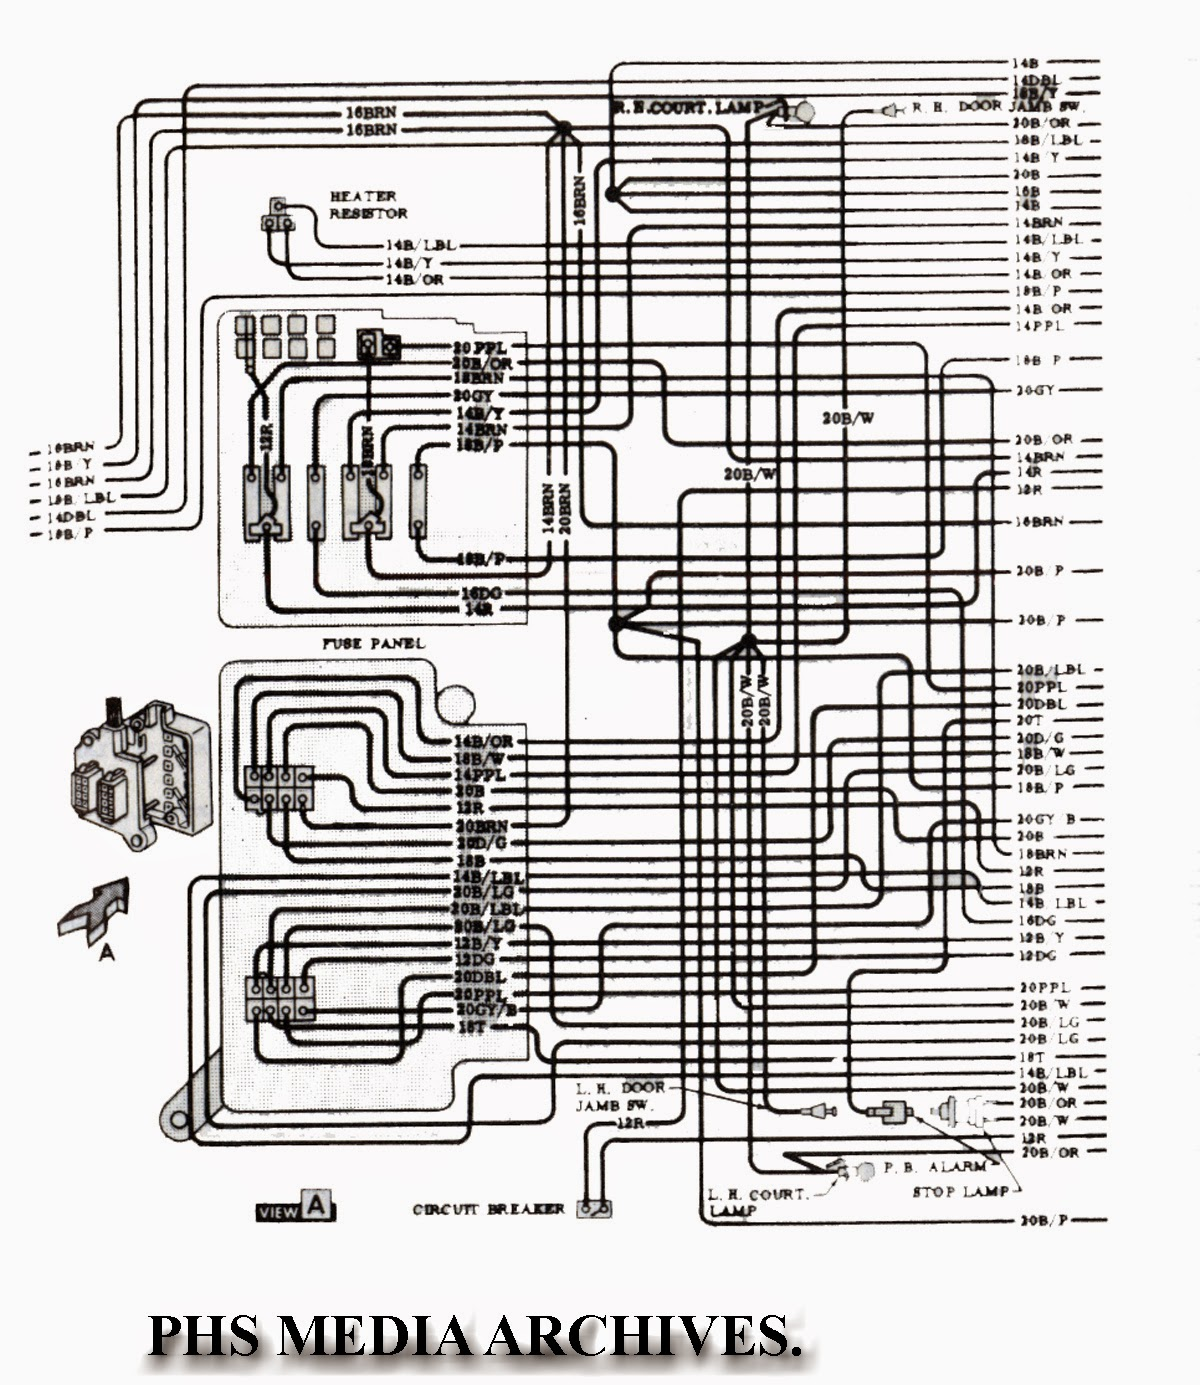 1965 chevrolet wiring diagram auto diagrams  1965  get